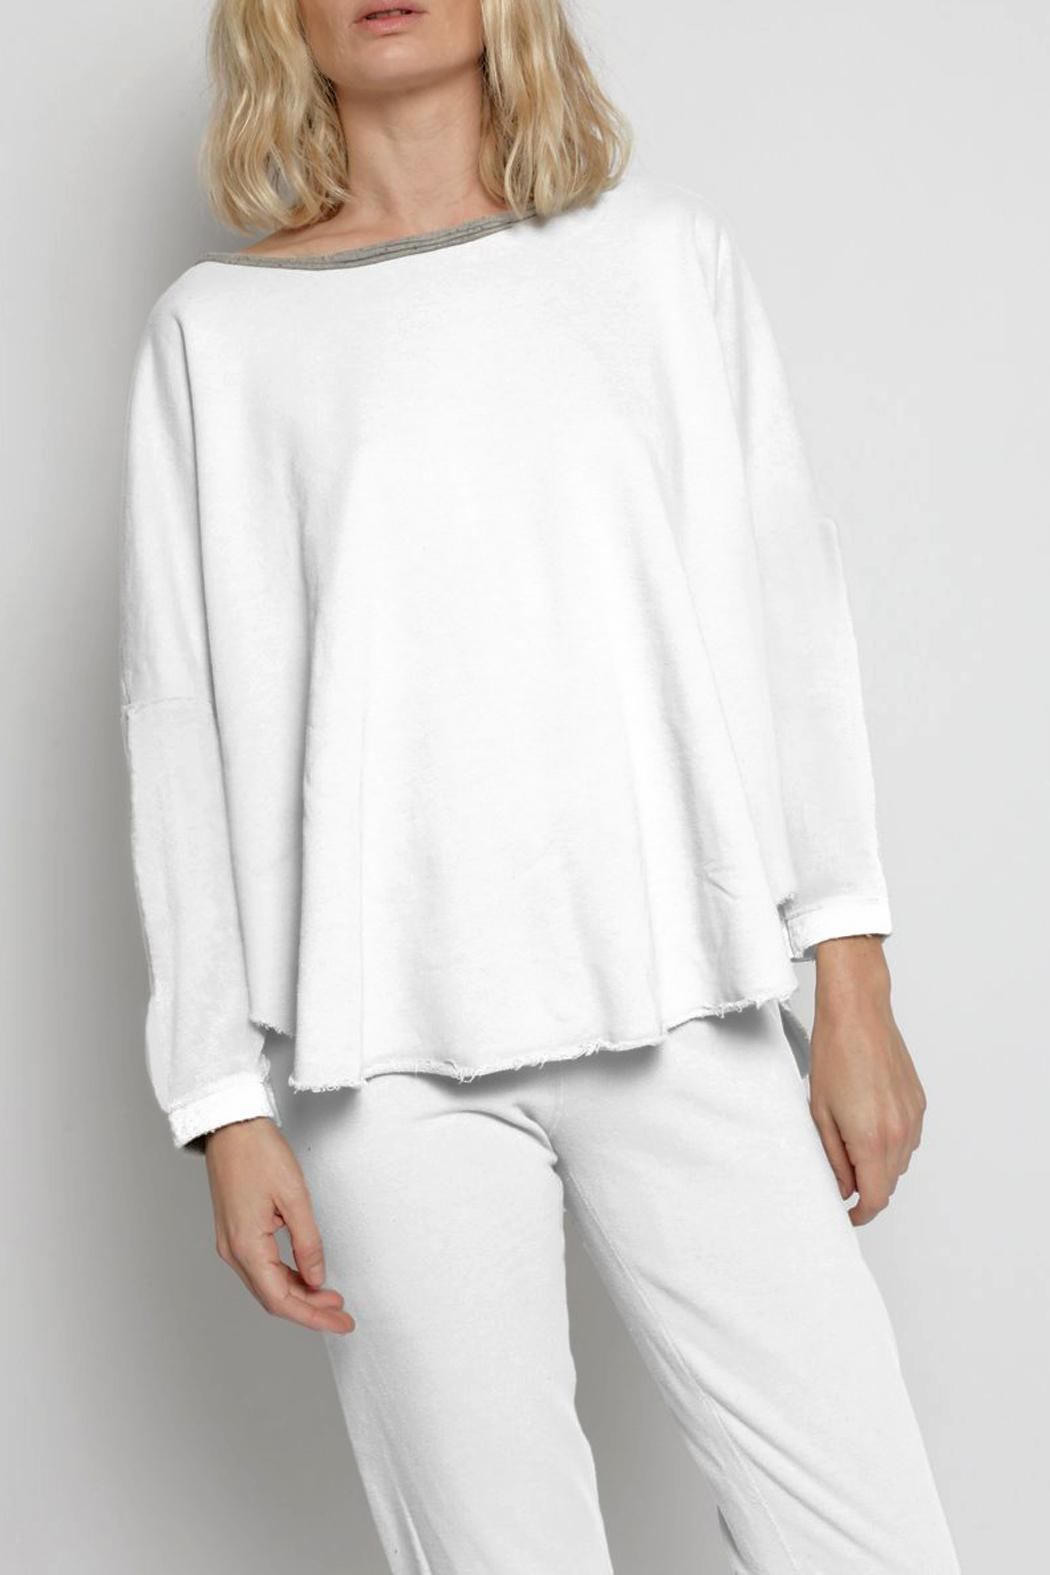 Christina Lehr White Lightweight Sweatshirt - Main Image